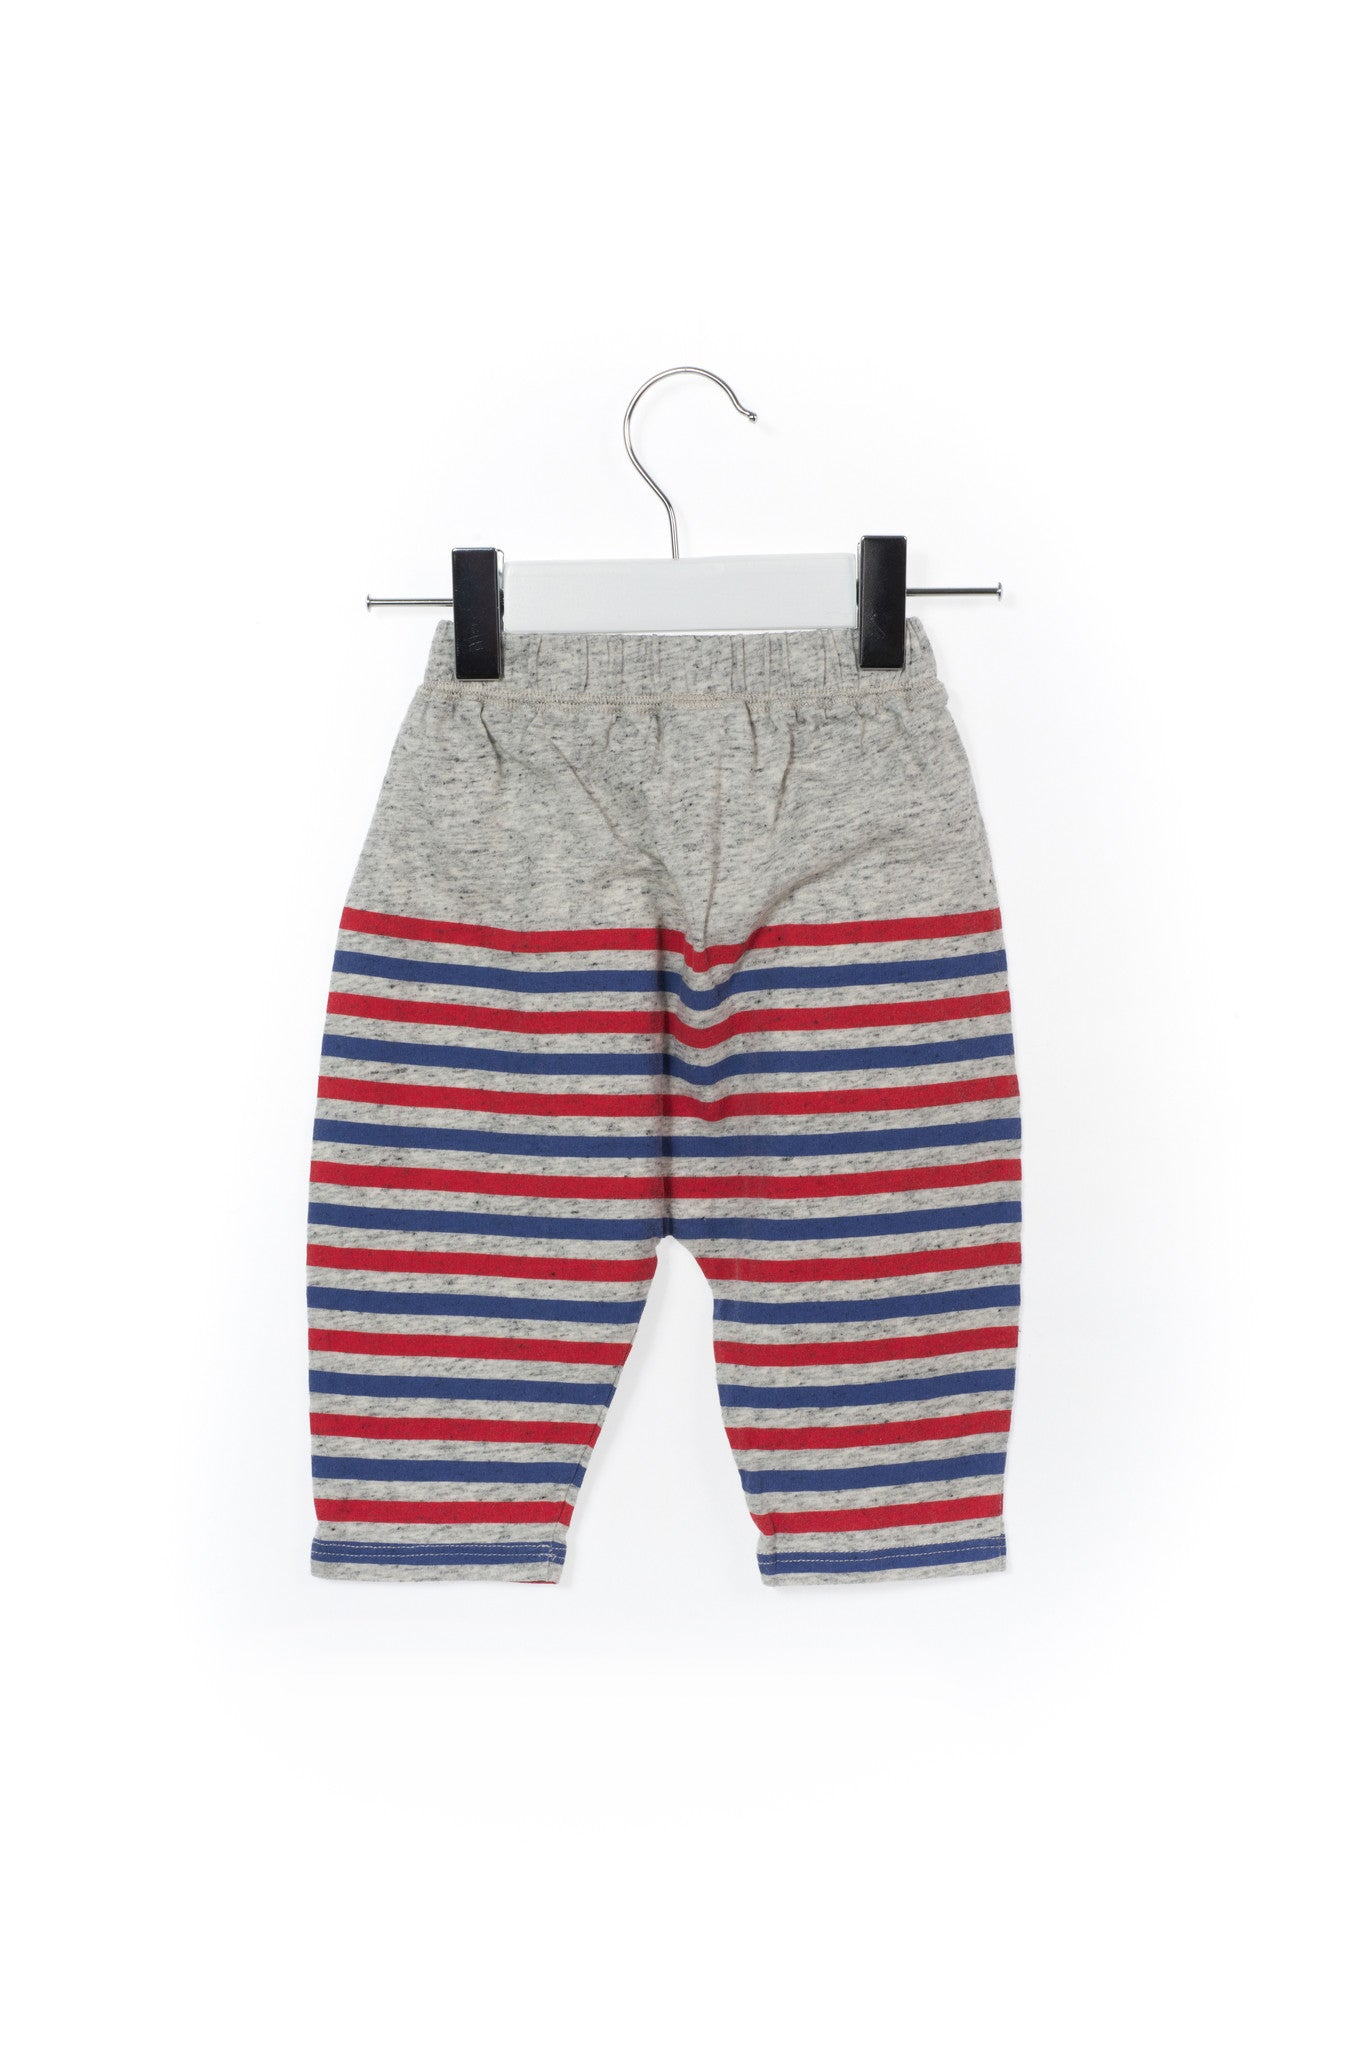 Pants 3-6M, Seed at Retykle - Online Baby & Kids Clothing Up to 90% Off